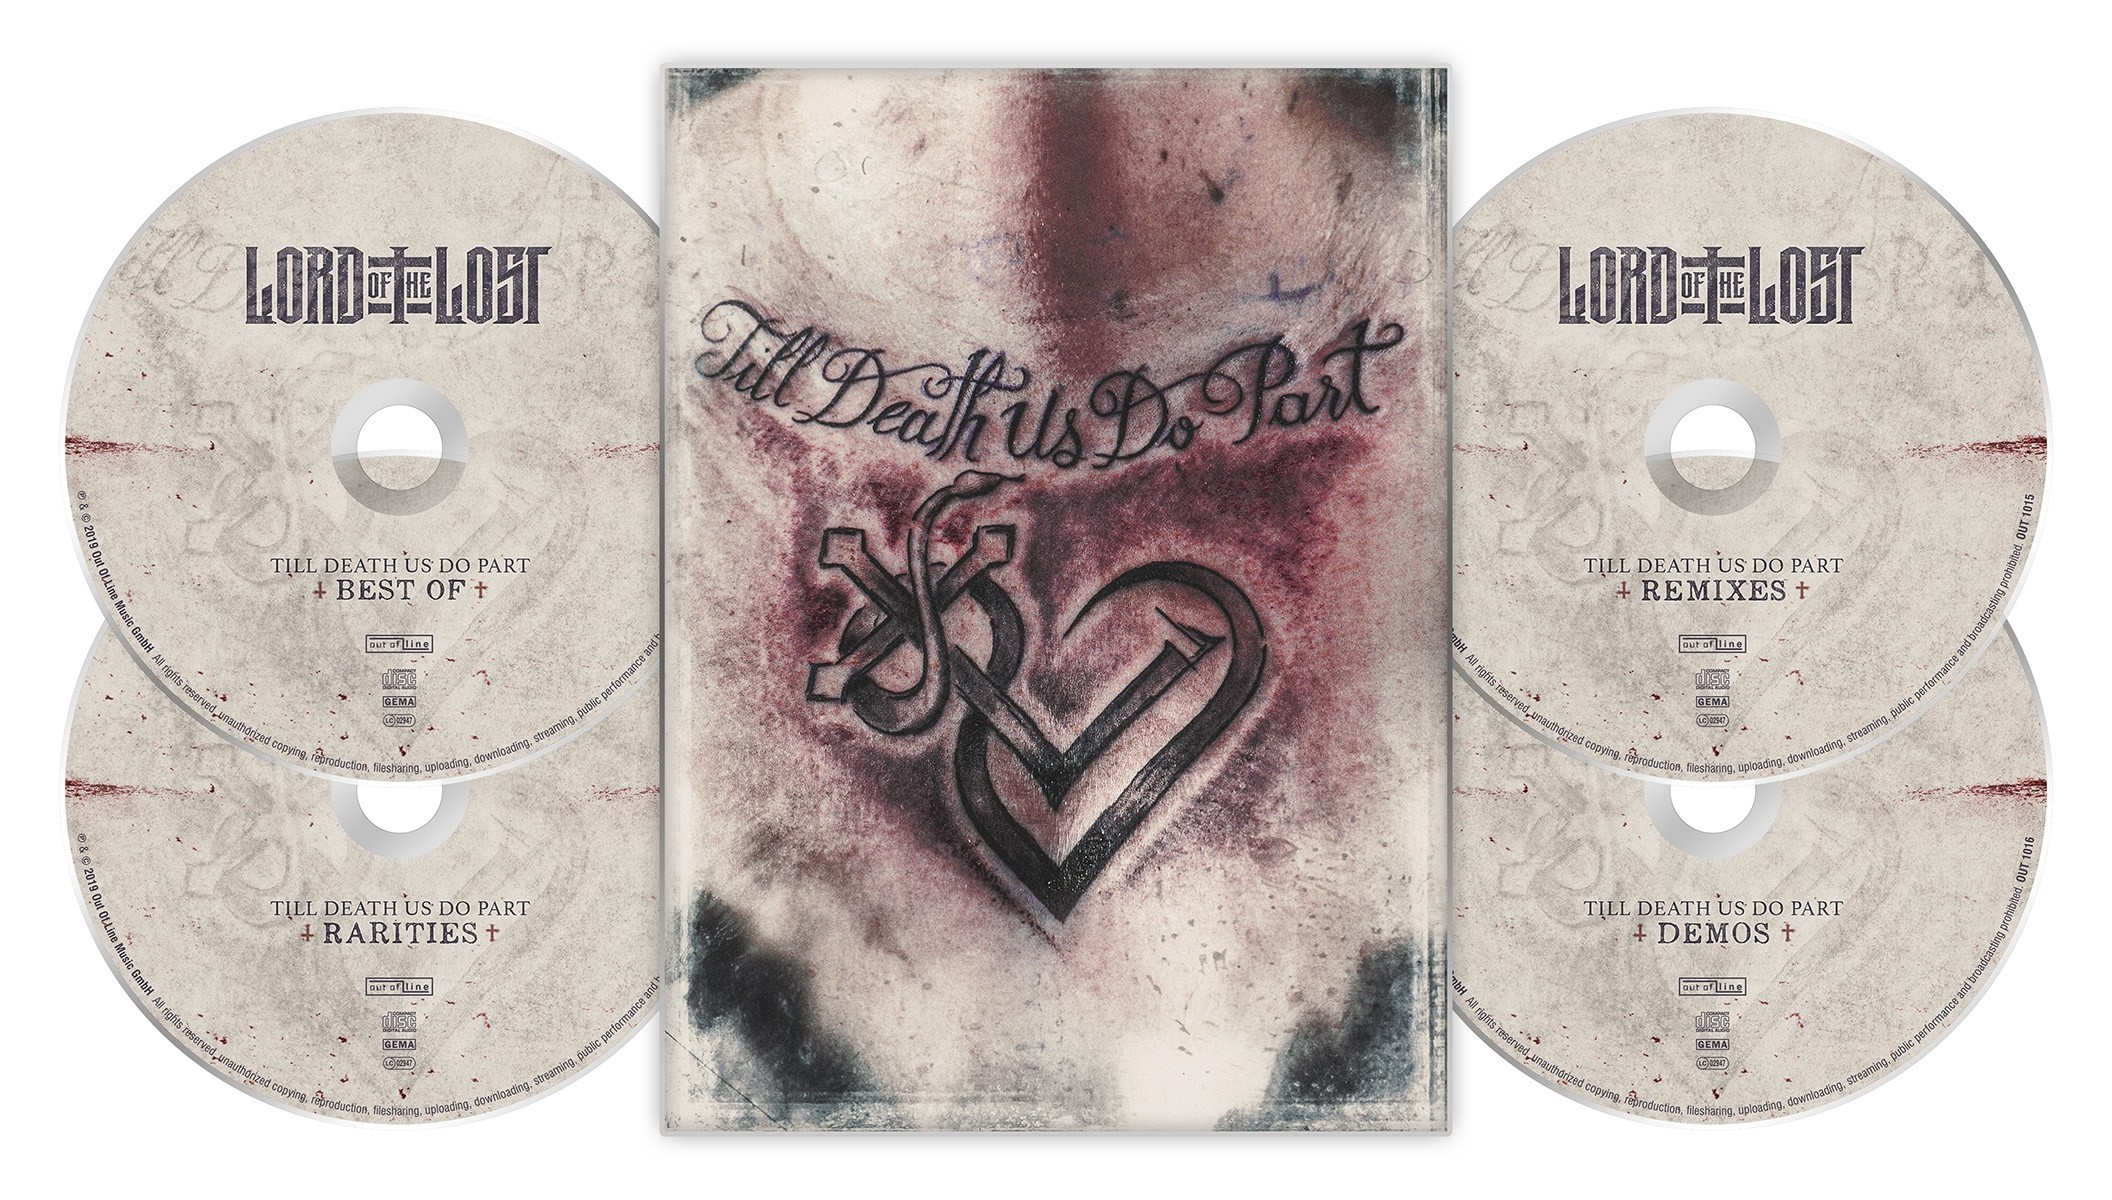 Lord Of The Lost - Till Death Us Do Part - Best Of (Limited Edition) - 4CD DigiBox